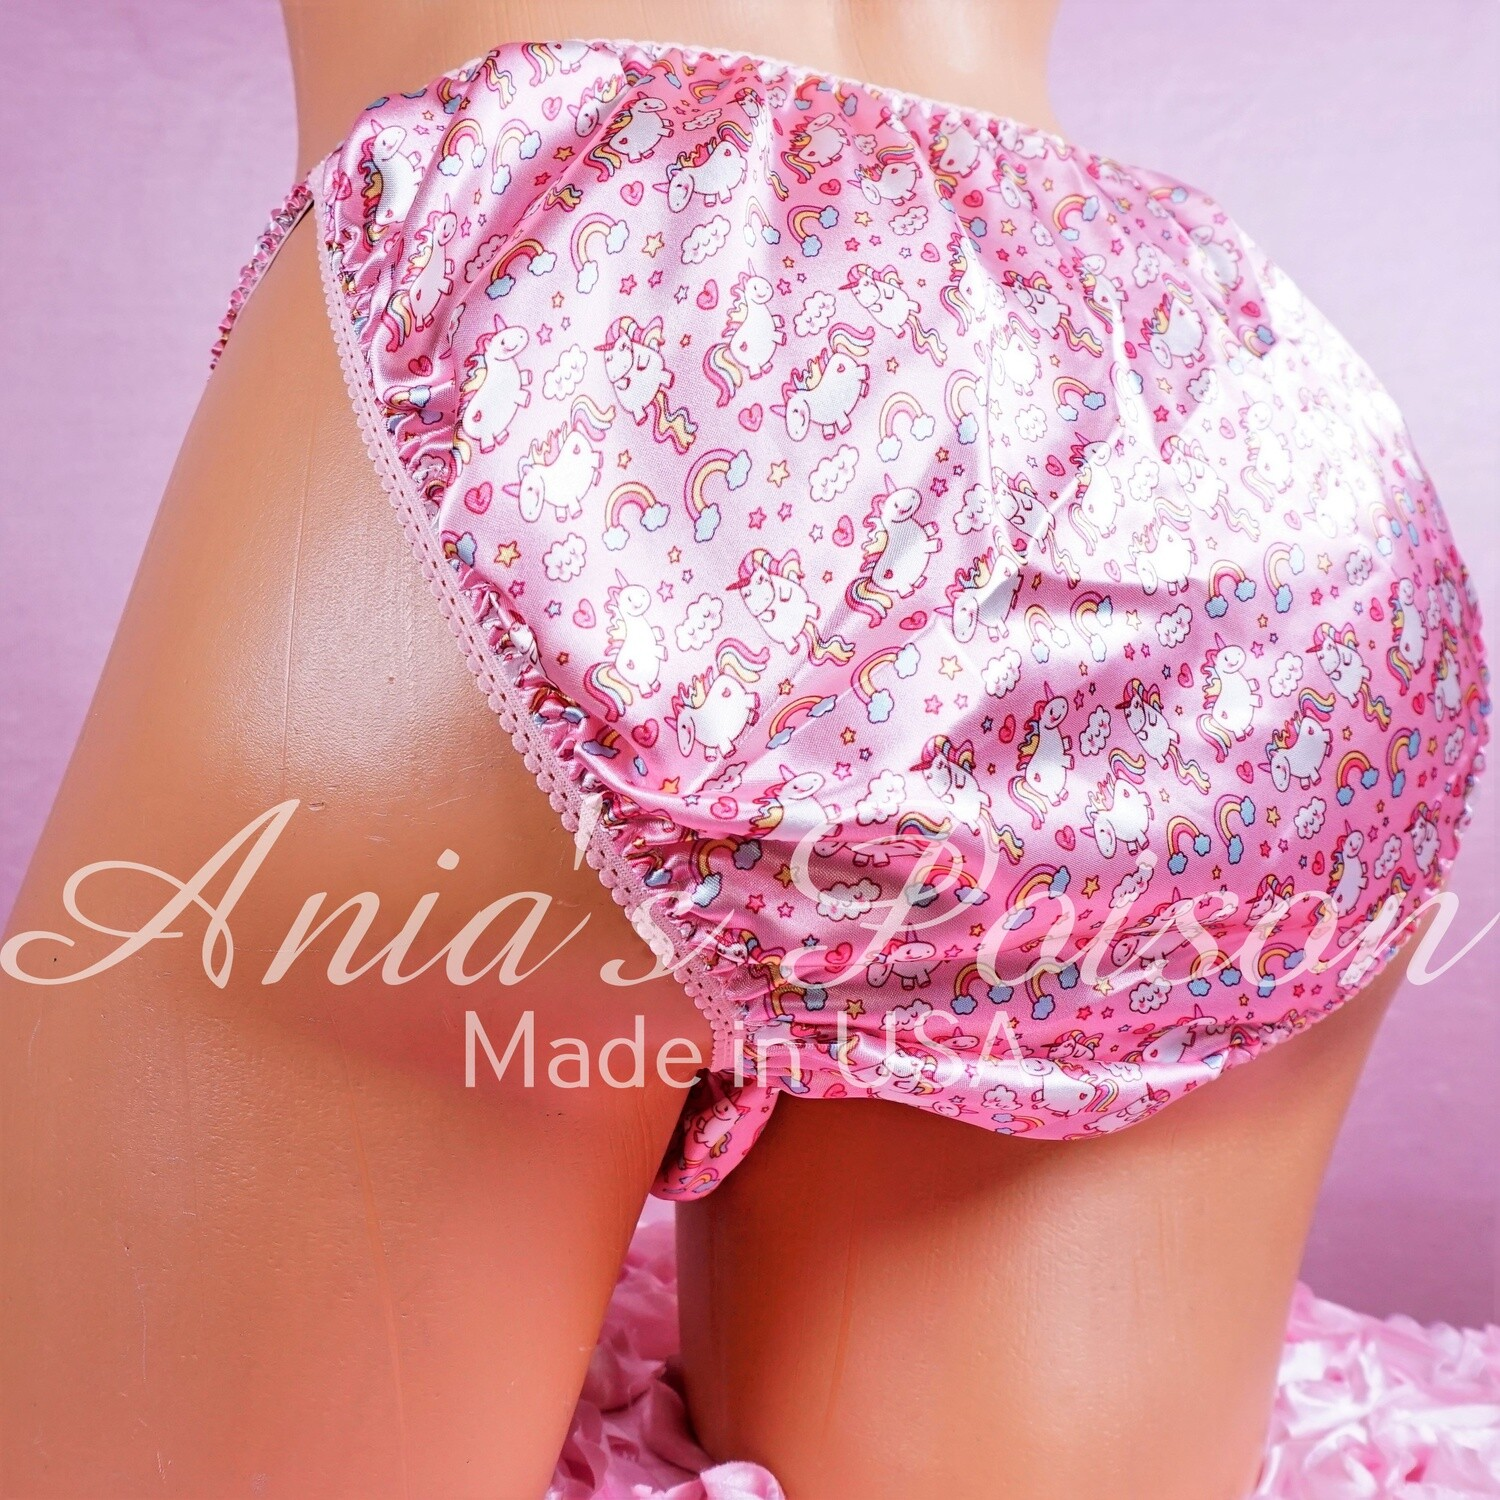 Valentine's Day Shiny Satin string bikini mens panties - Stunning Pink micro Unicorn print - Super Limited